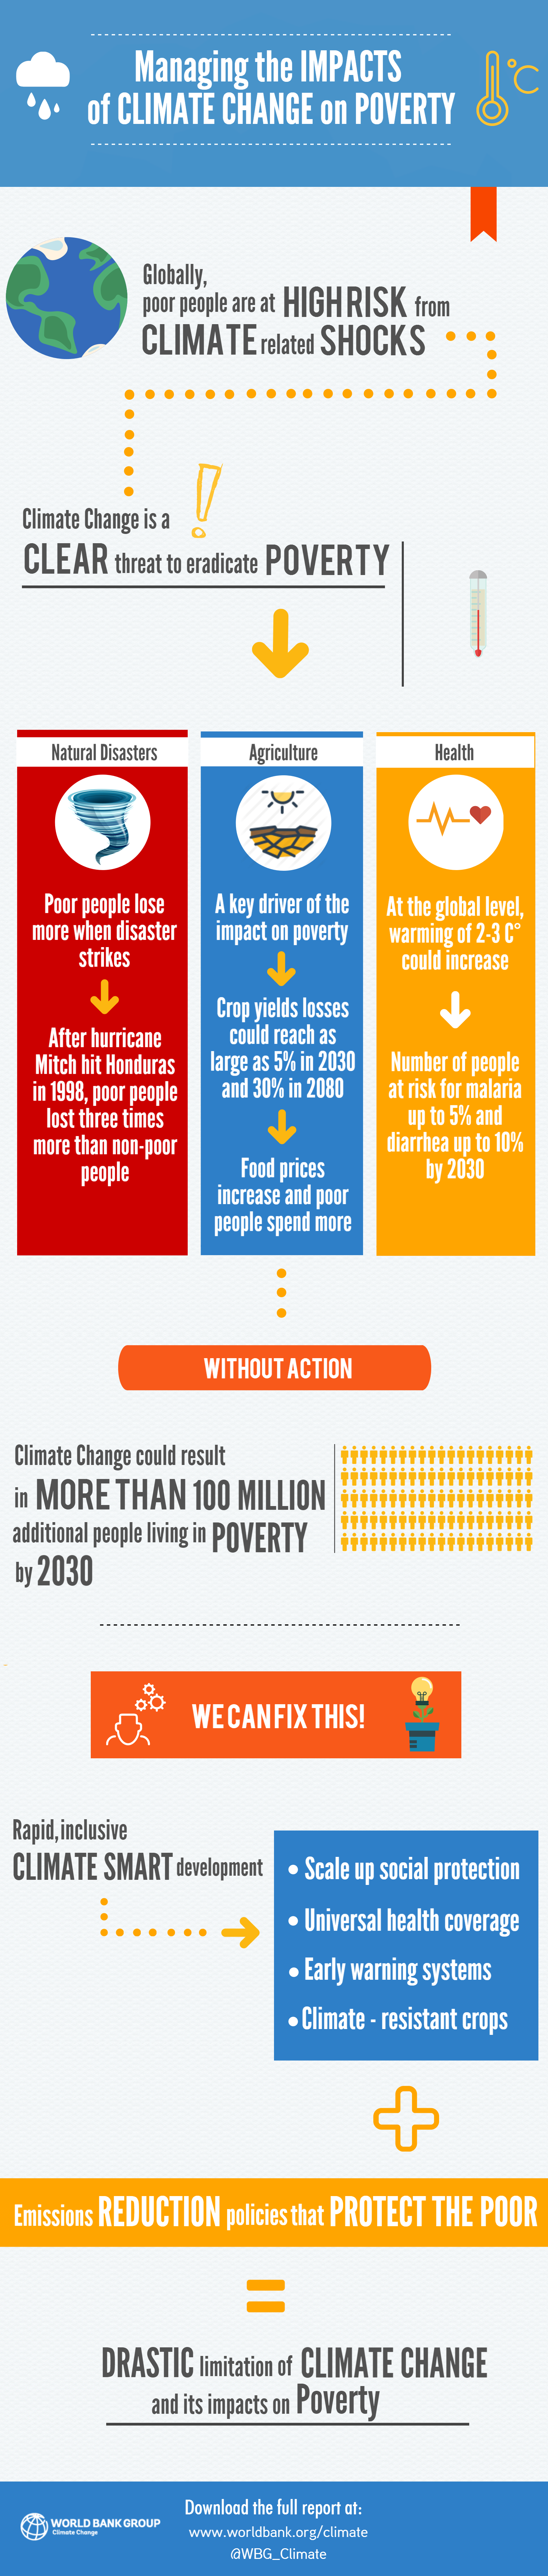 An infographic depicting the World Bank's report and prediction of 100 million people who could suffer from extreme poverty due to the effects of global climate change.